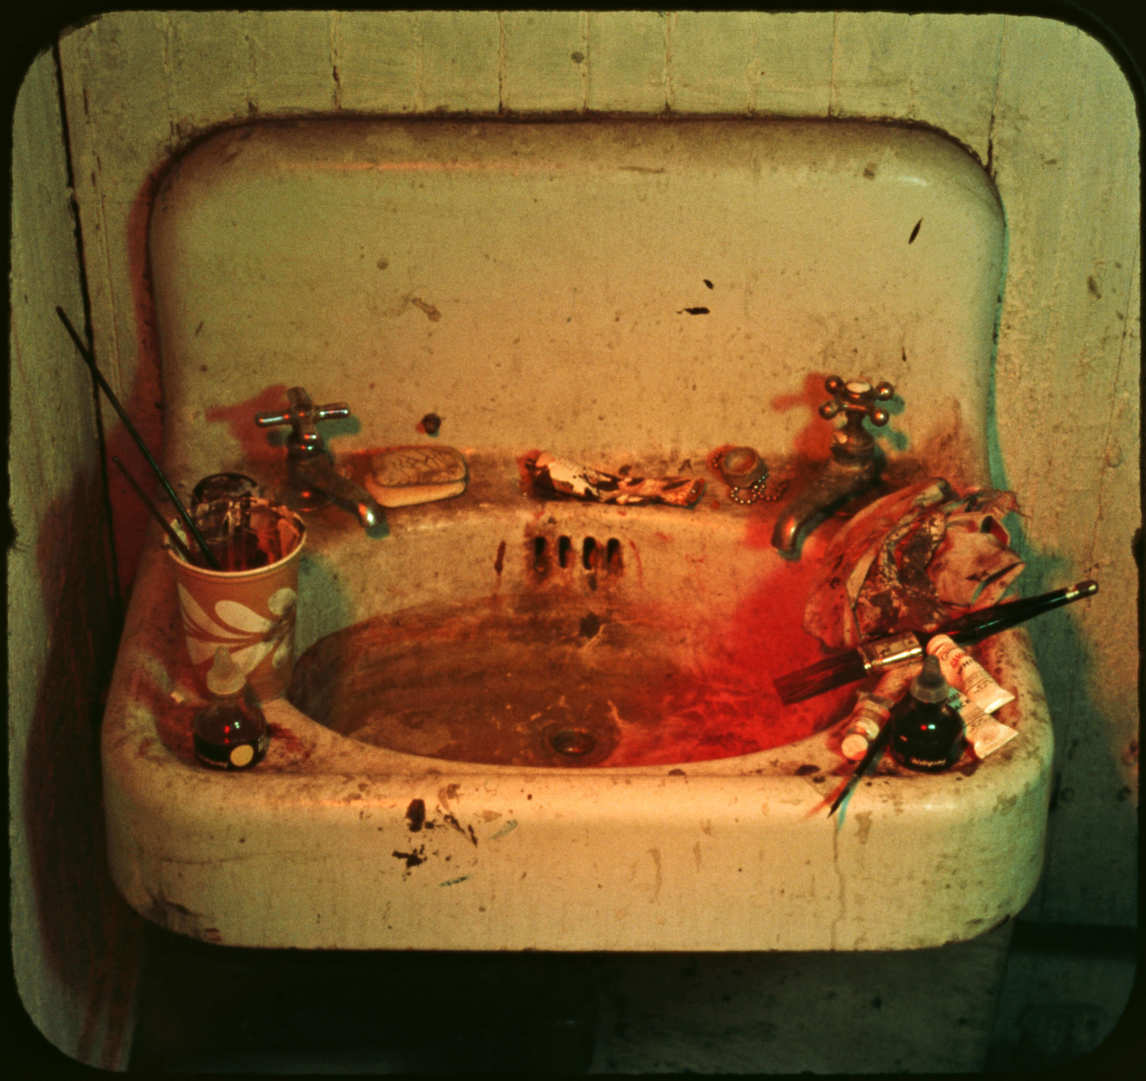 Art Canada Institute, Michael Snow, Sink, 1970